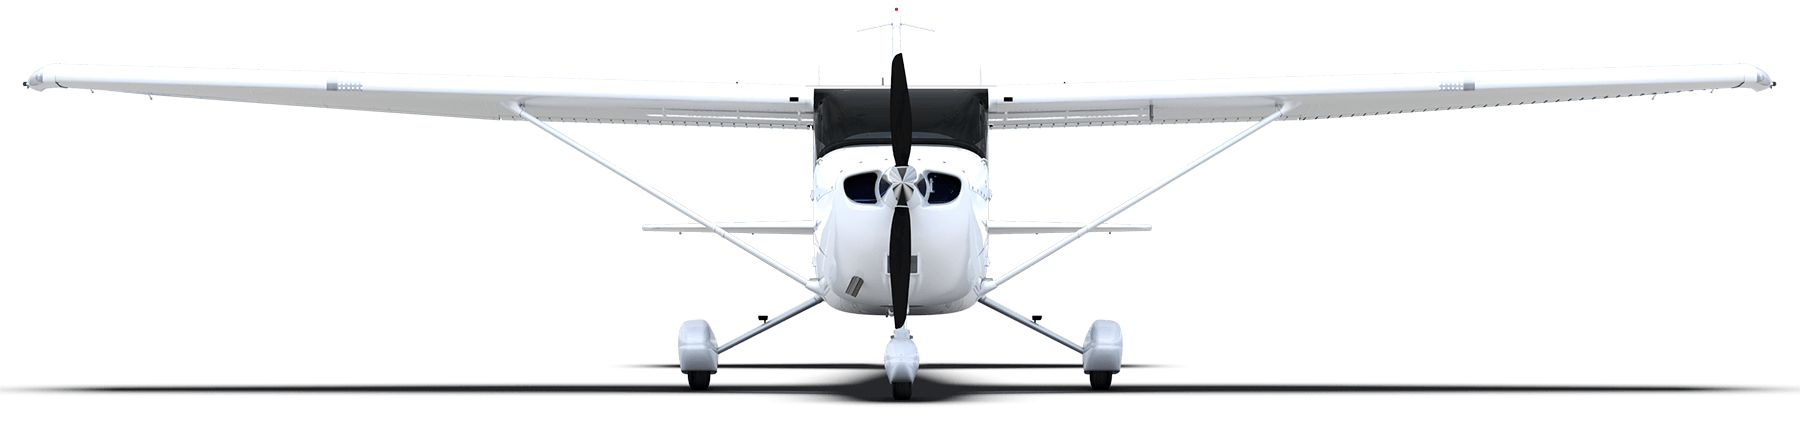 Cessna drawing icon. Skyhawk airborne solutions